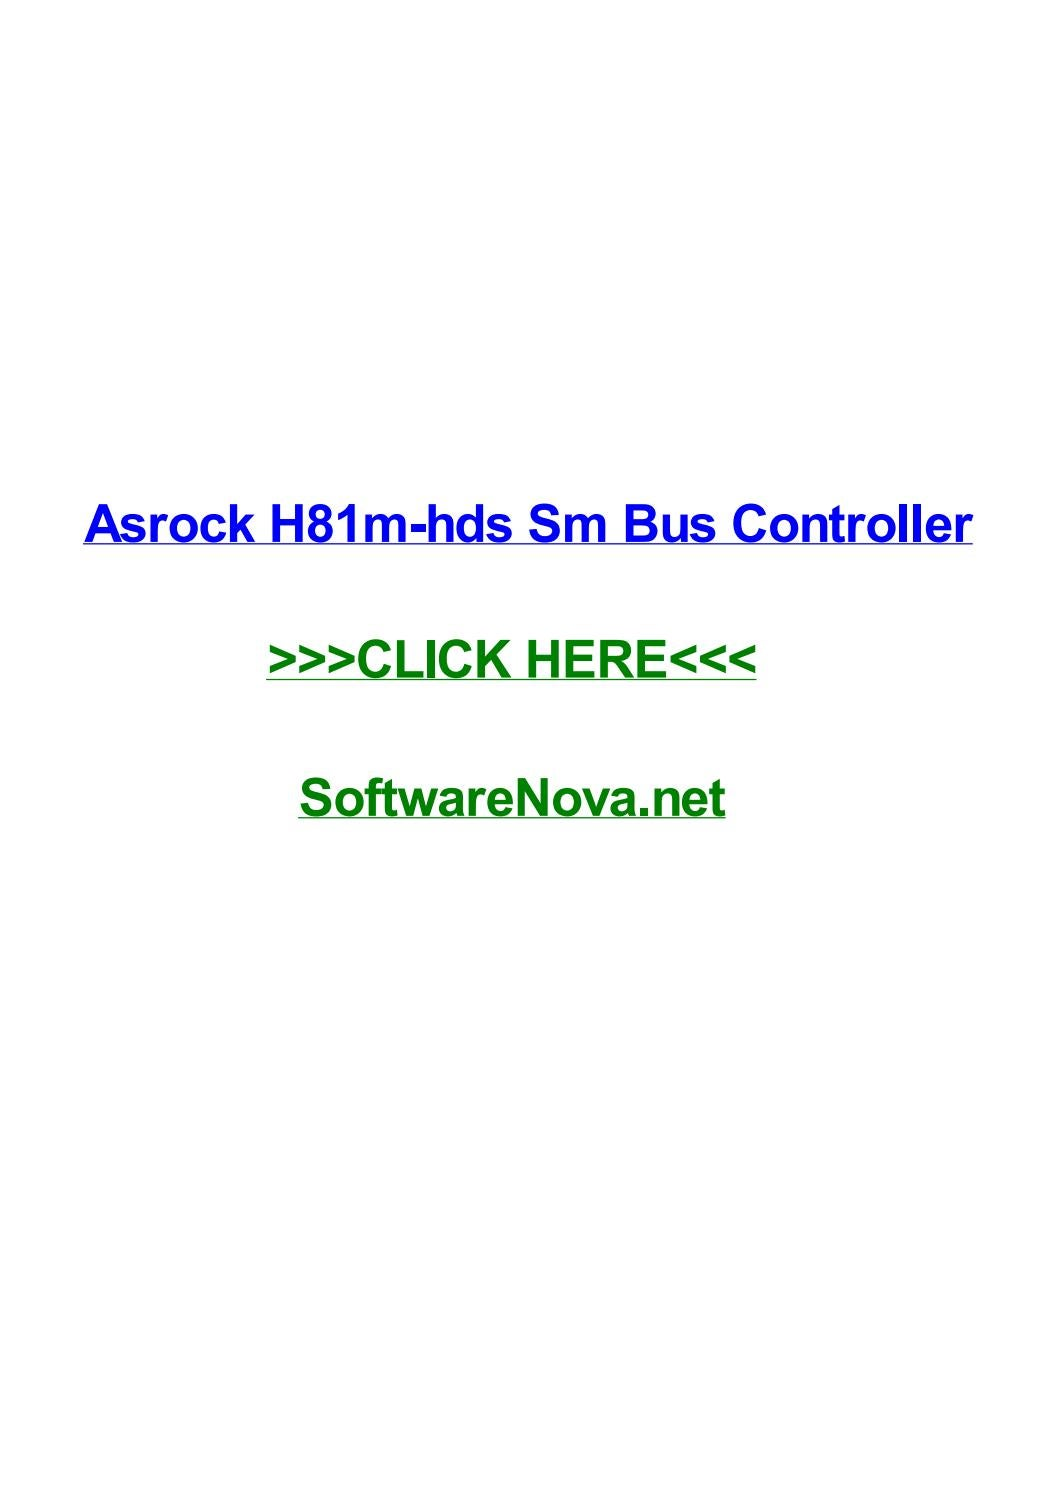 ASUS X54C SM BUS CONTROLLER WINDOWS 8.1 DRIVER